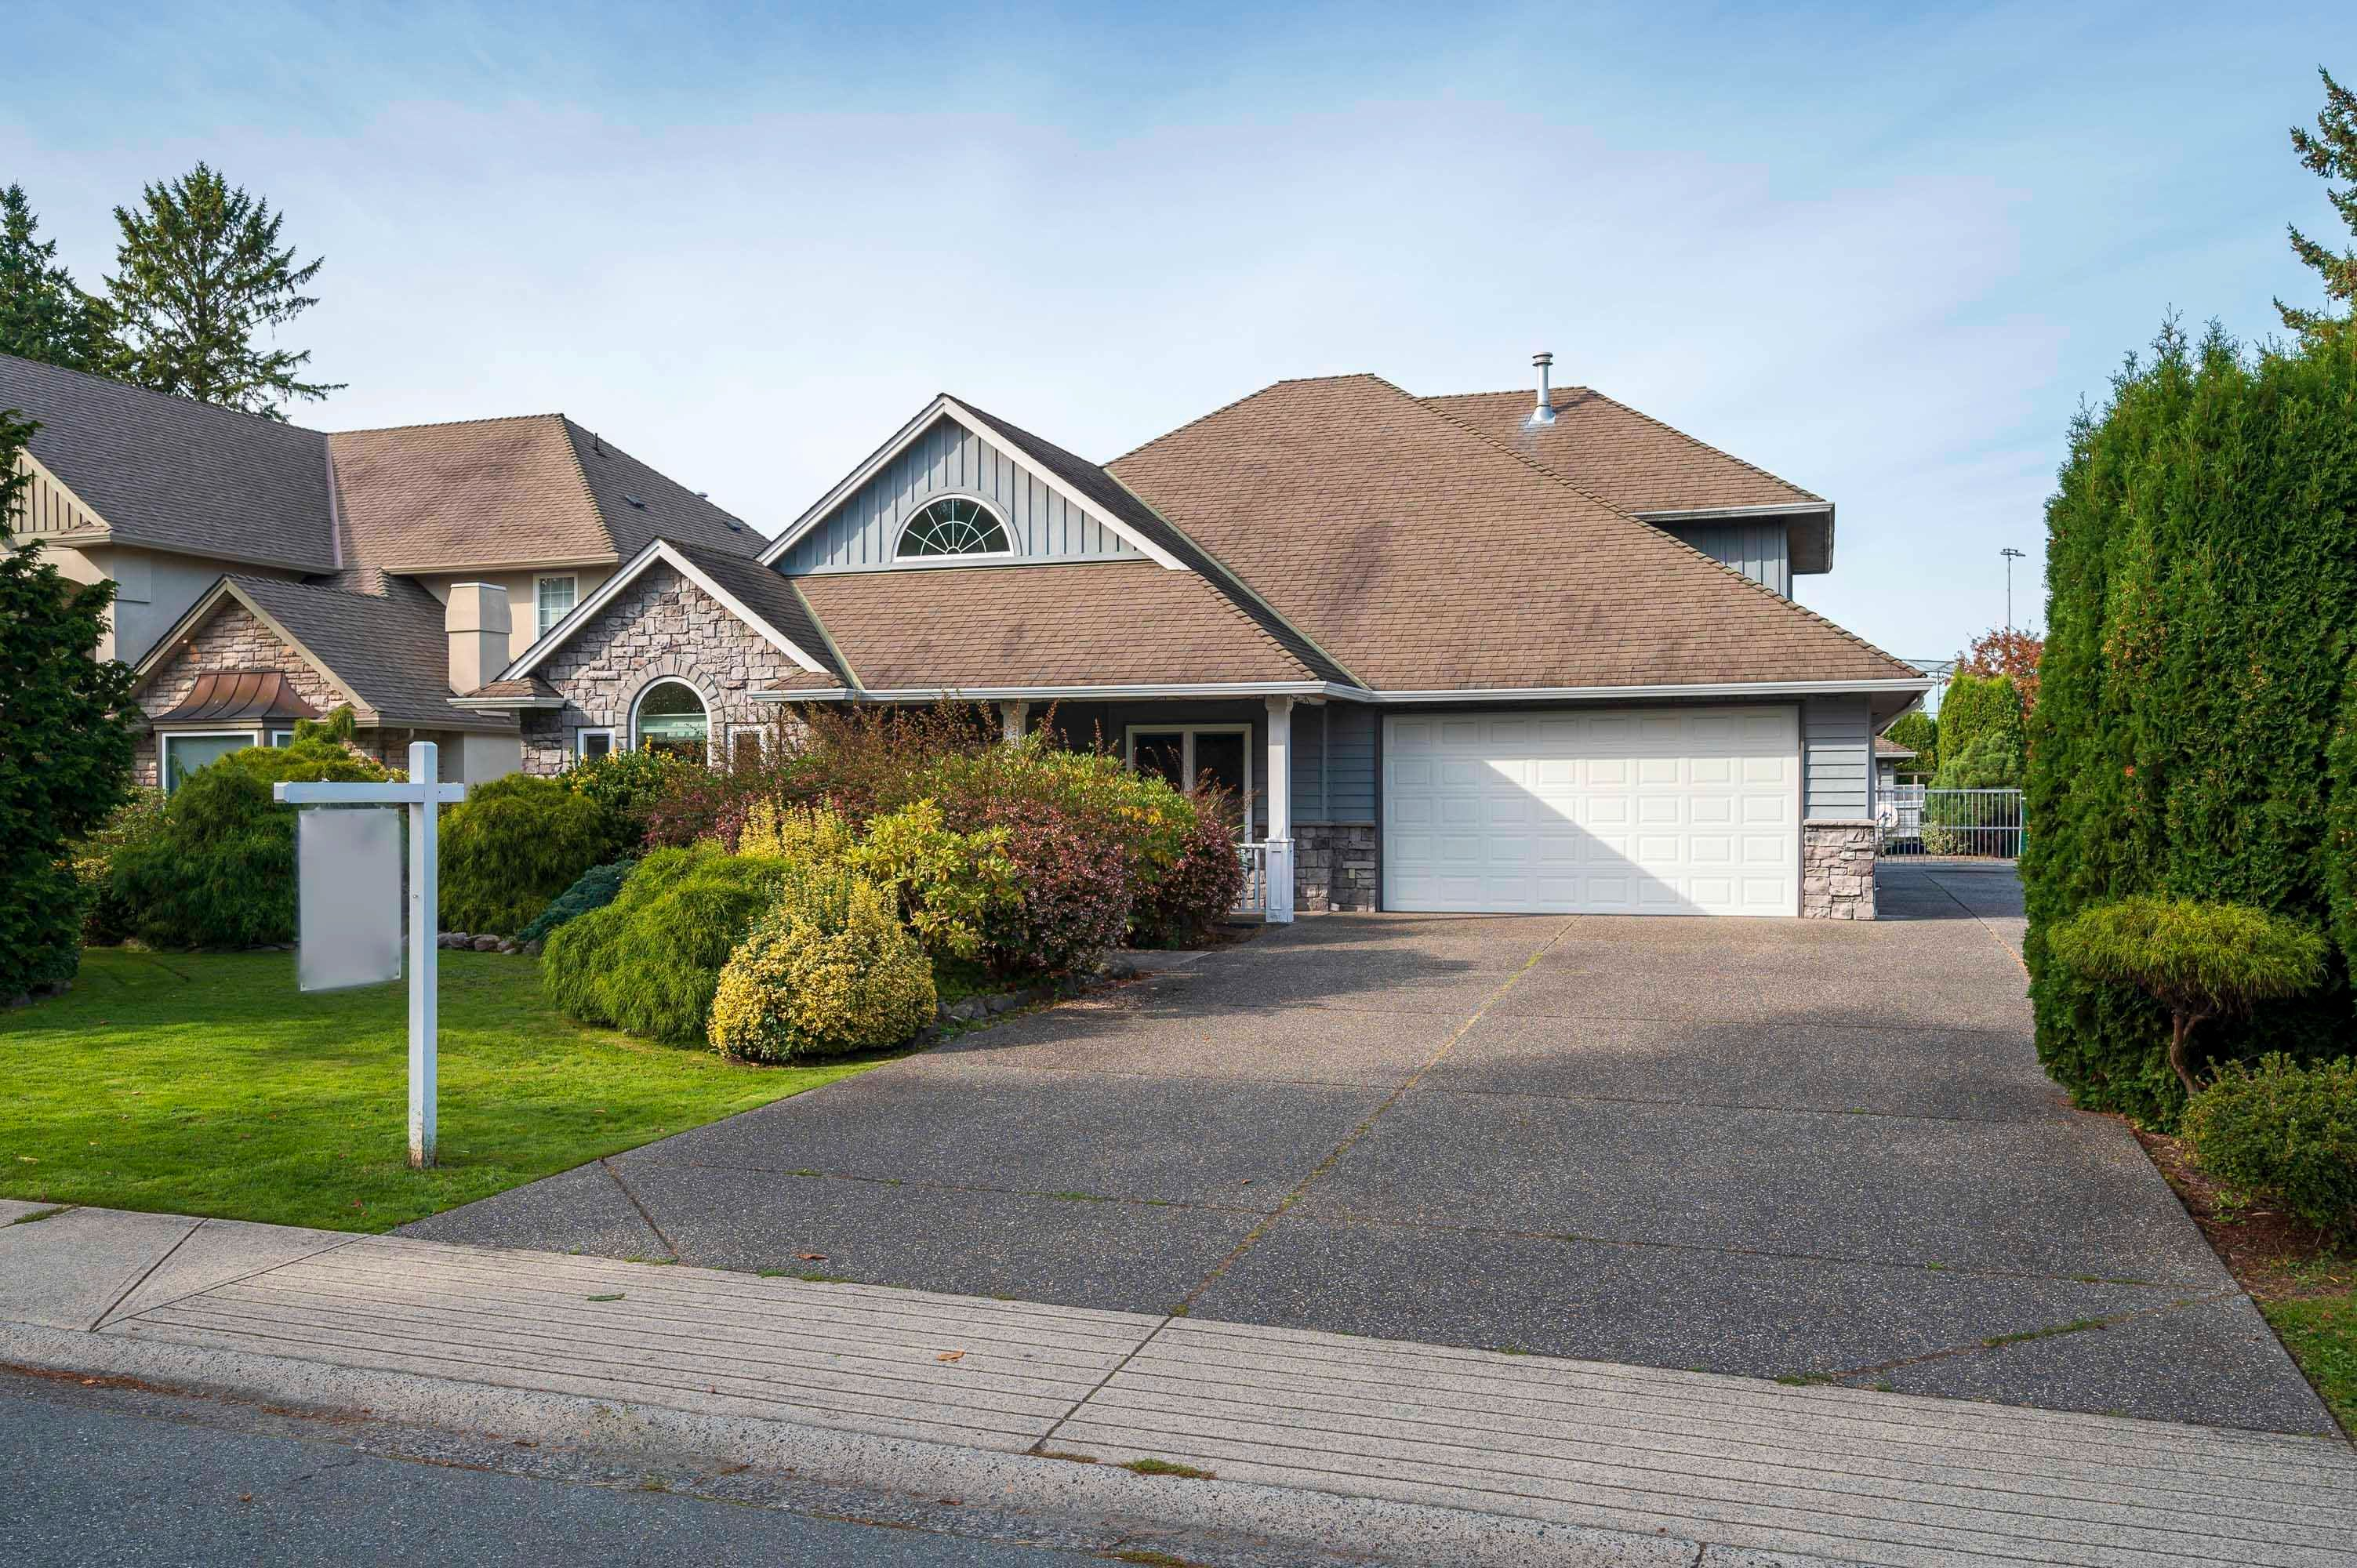 Main Photo: 5543 GROVE Avenue in Delta: Hawthorne House for sale (Ladner)  : MLS®# R2617603